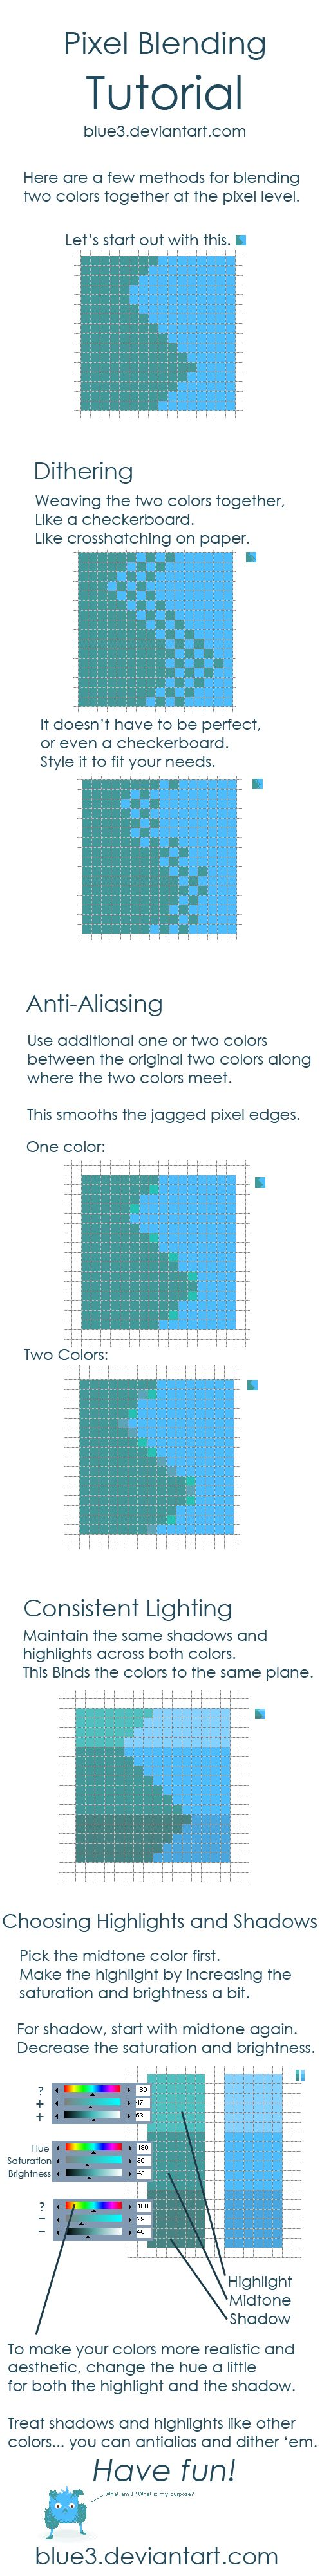 Game maker color blend - Pixel Blending Shading Tips By Blue3